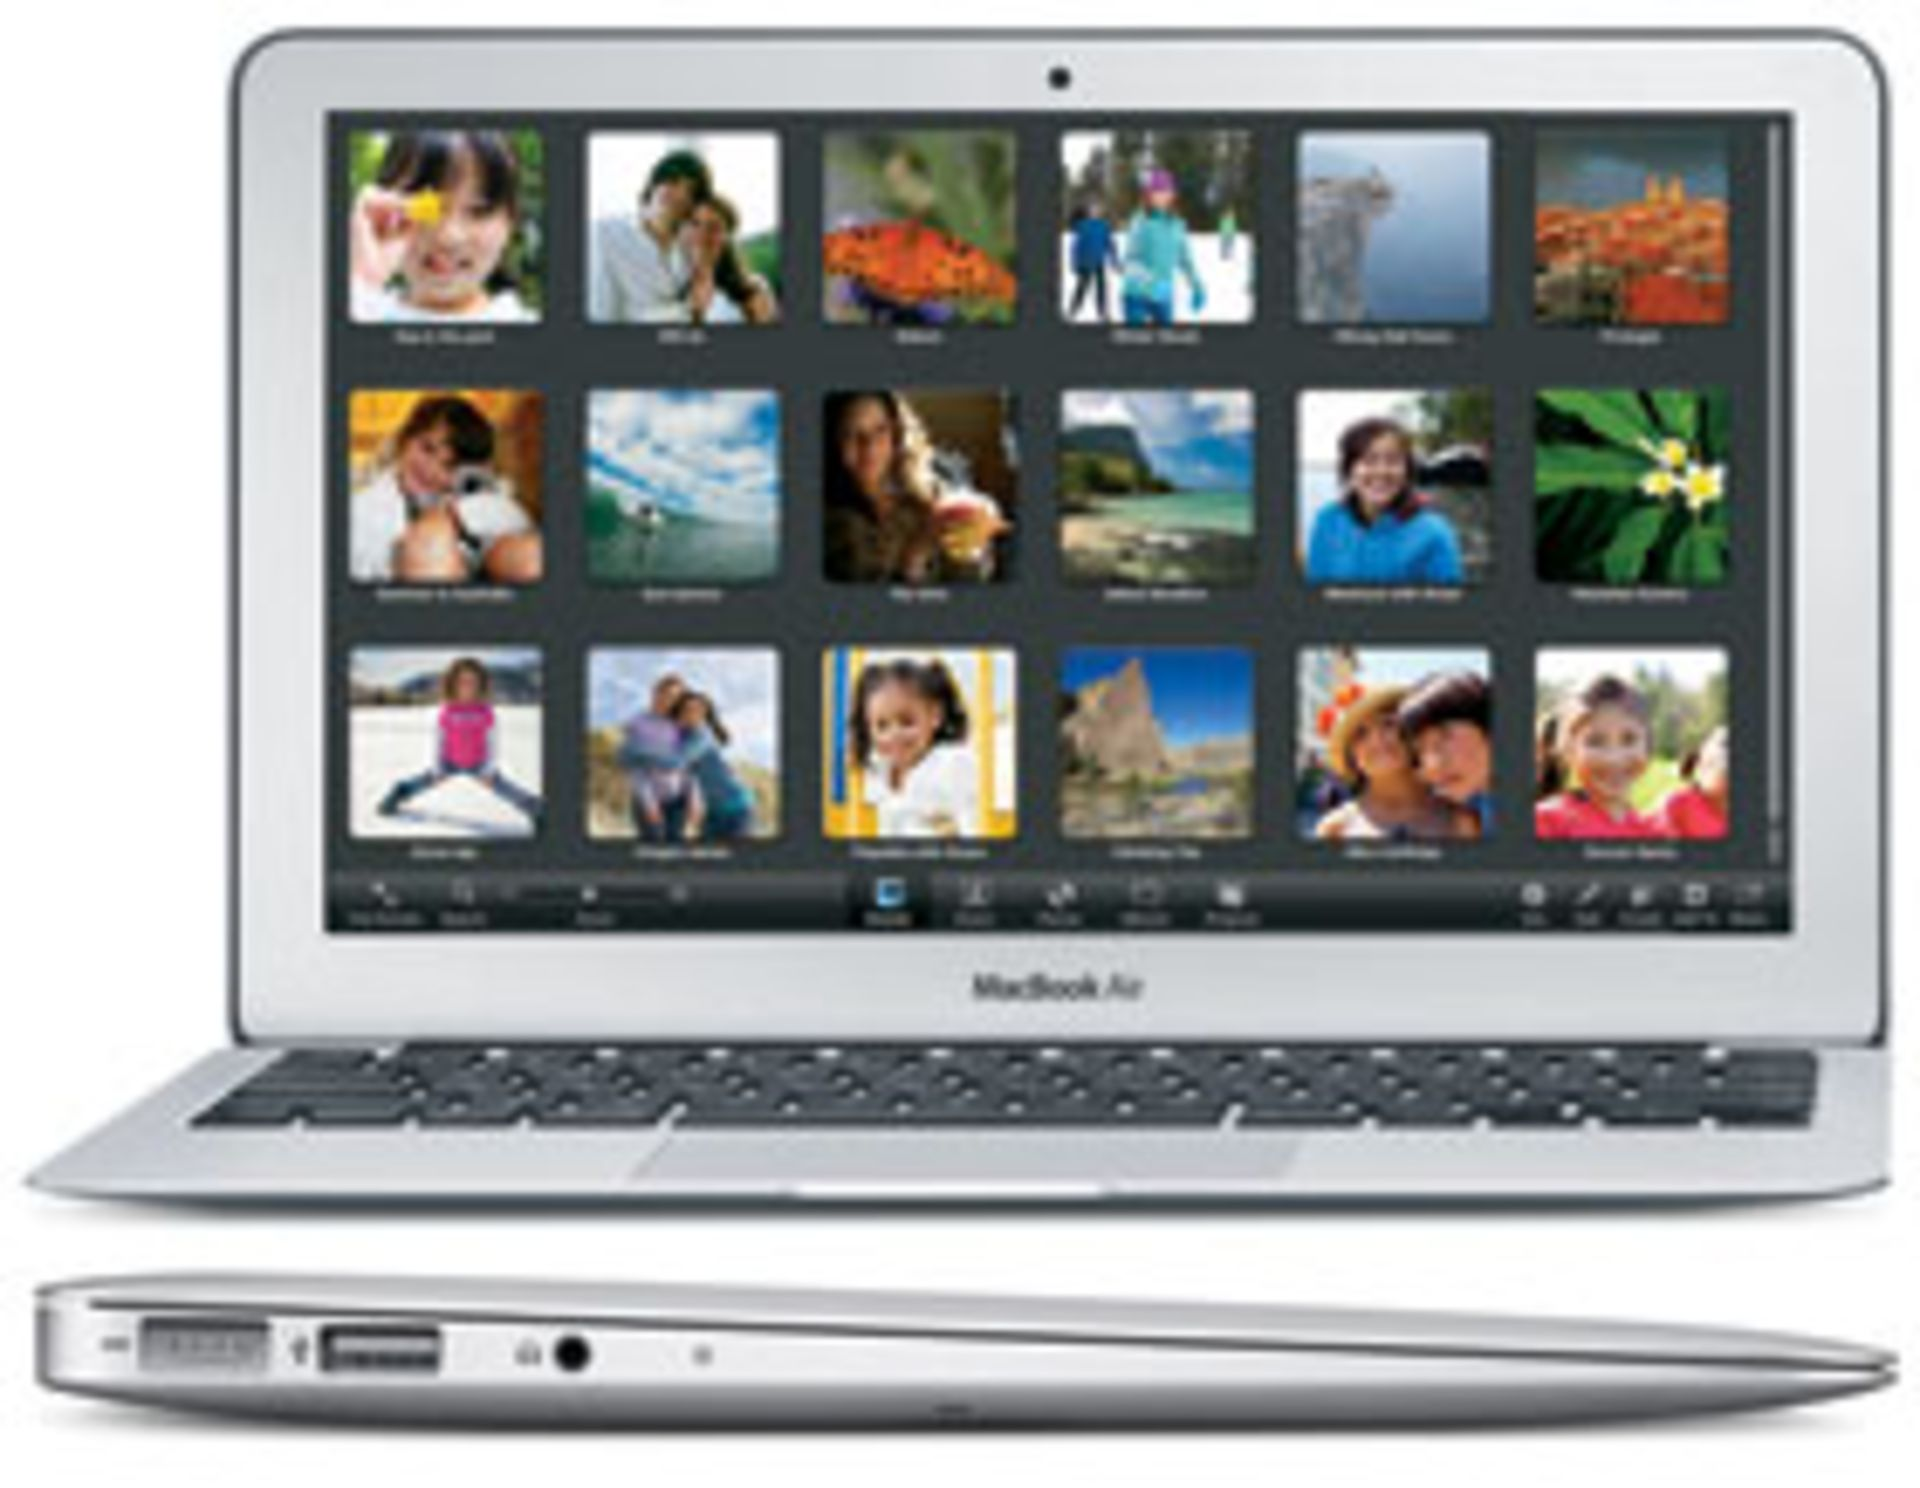 Lot 60032 - V Grade B Macbook Air 11.6 Inch Core 2 Duo - 64GB SSD - A1370 - Available Approx 7 Working Days